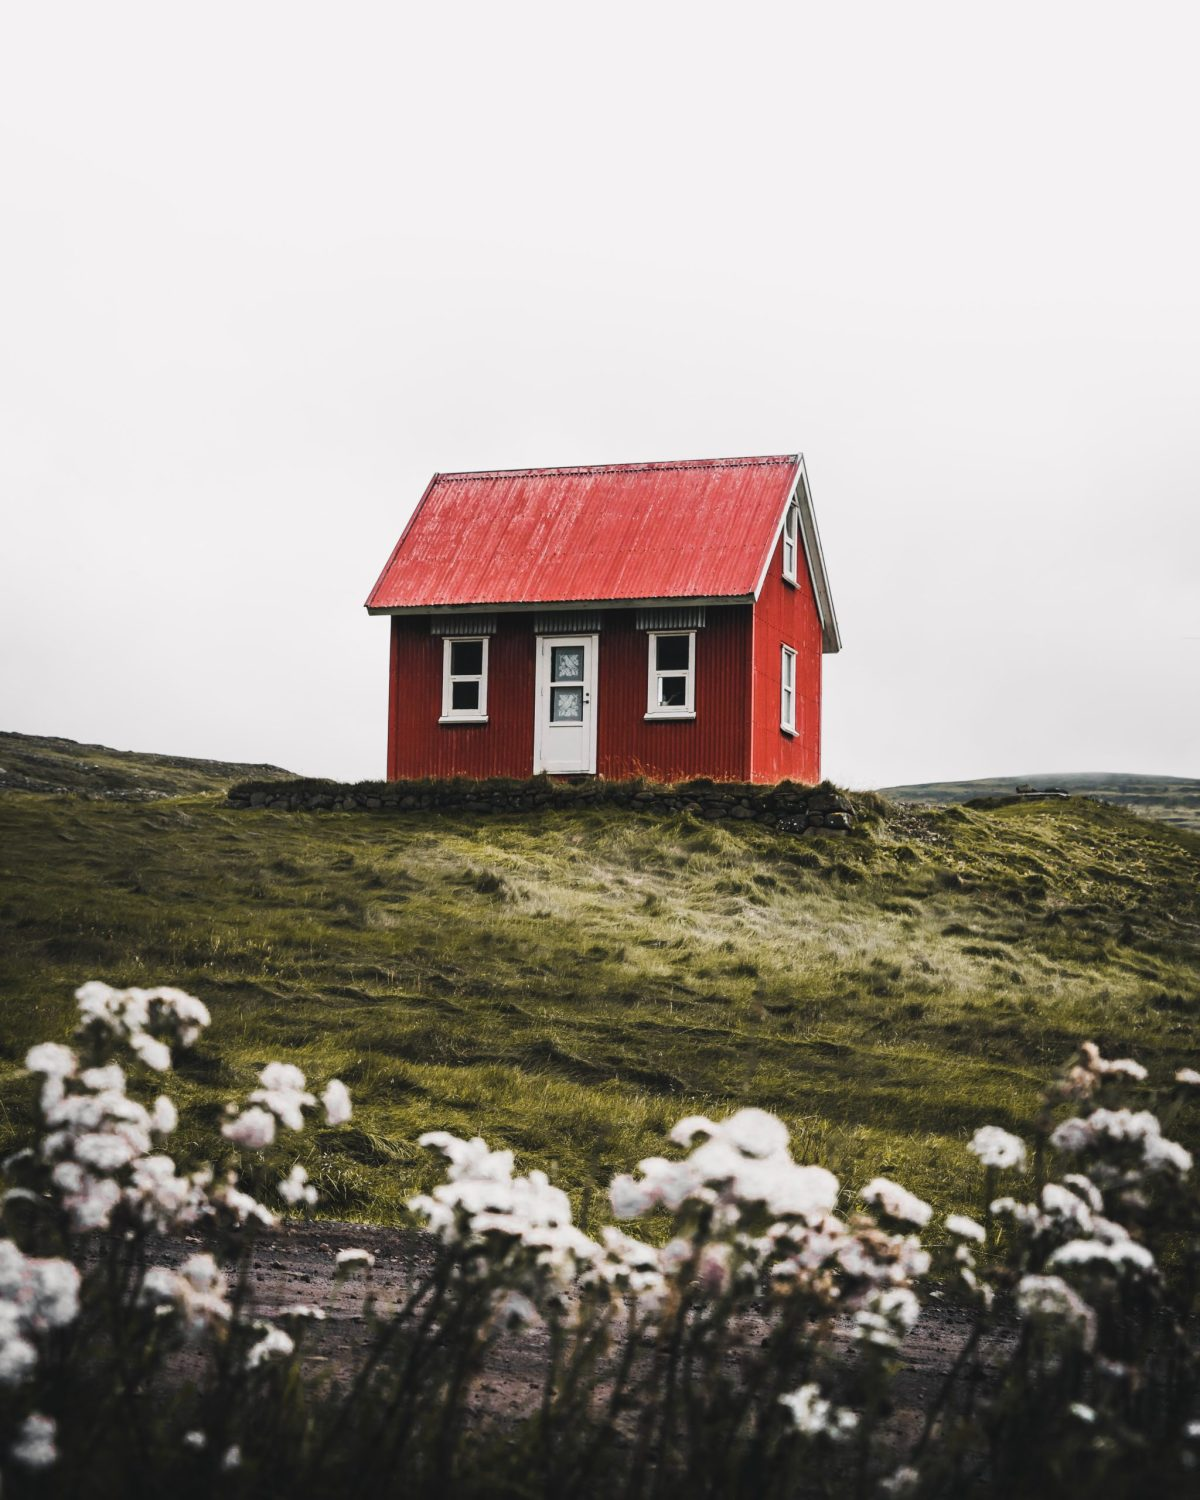 A small red house sits atop a grassy hill.